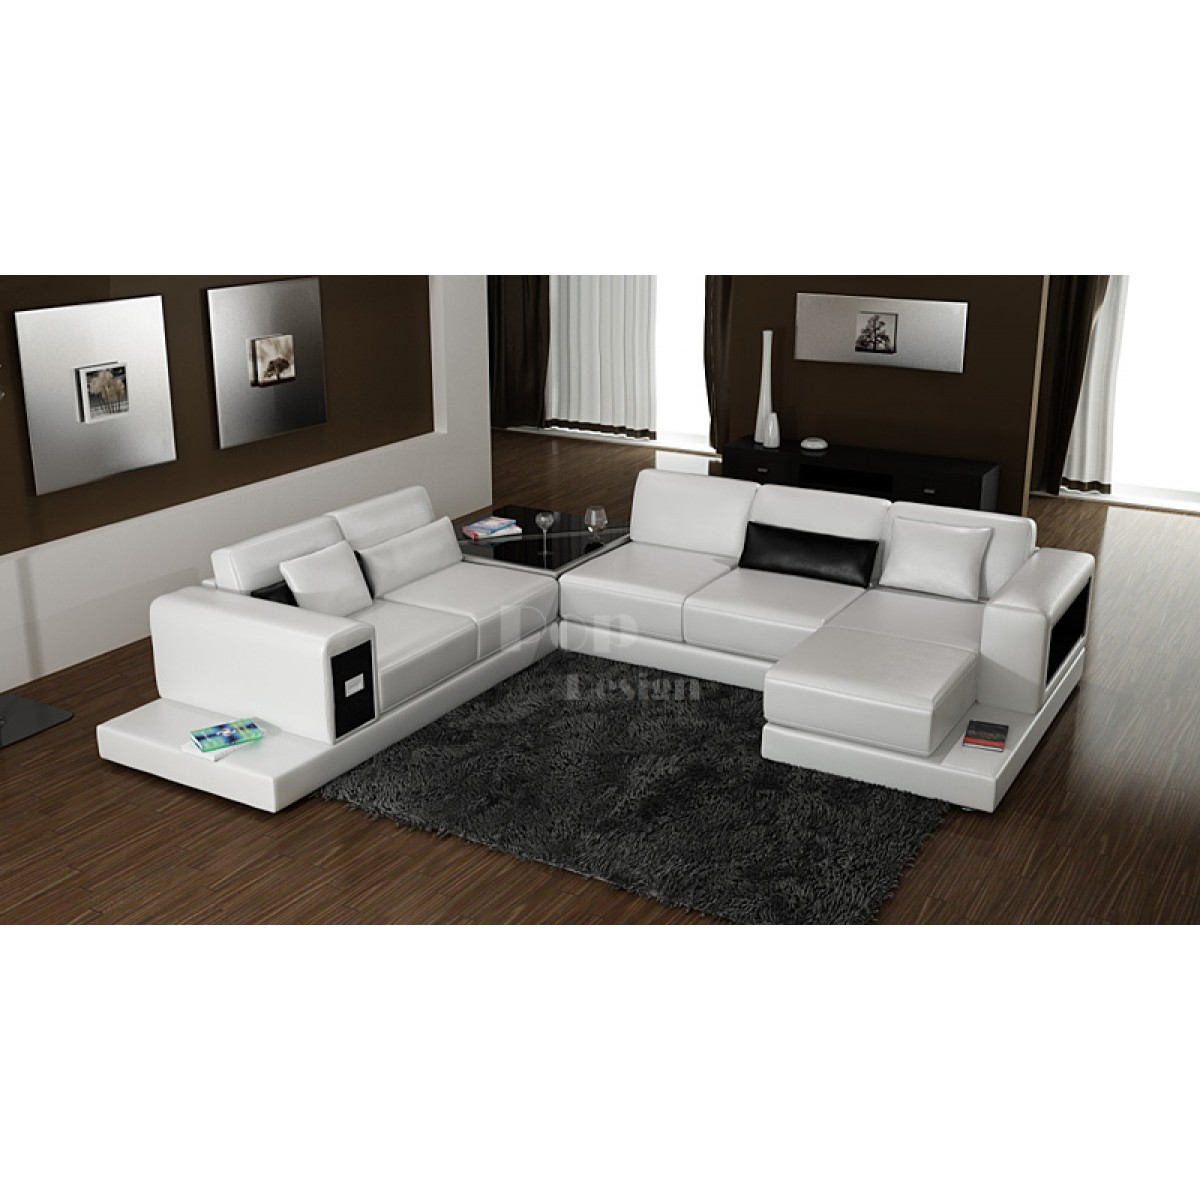 Canap d 39 angle design panoramique en cuir arezzo xxl pop for Canape angle design